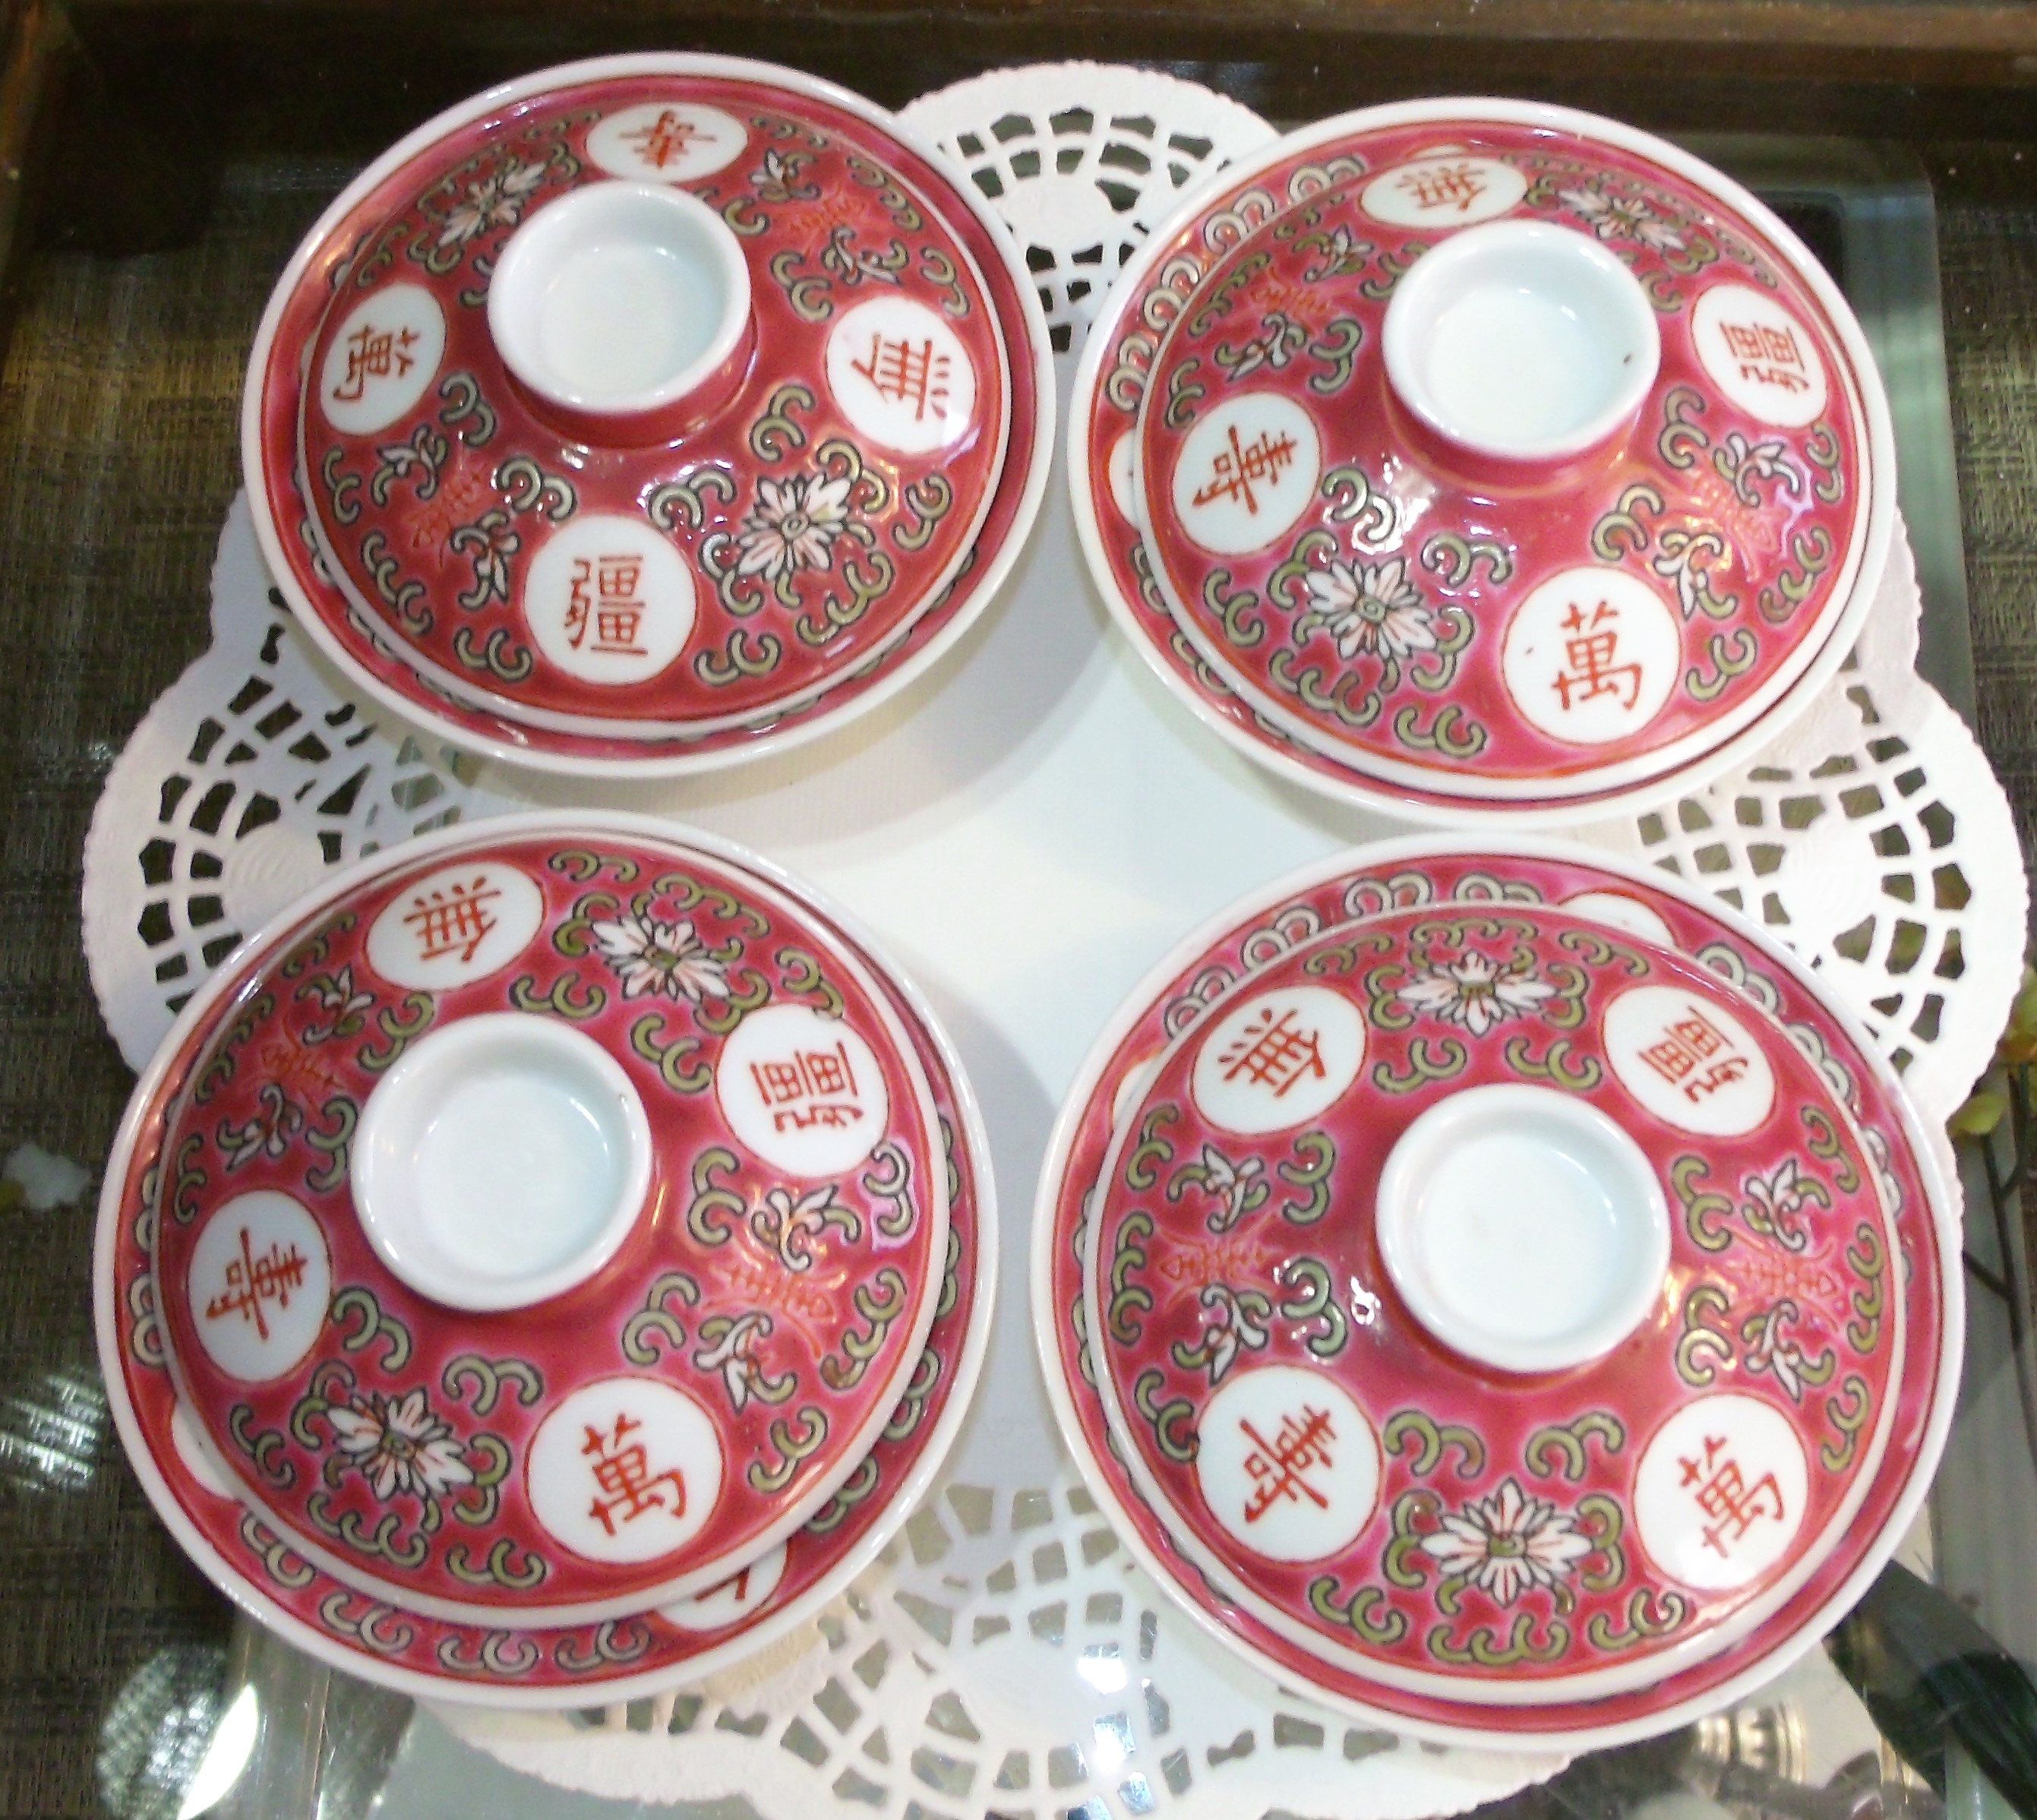 Set of 4 RED Chinese Bowls w/ Lids Calligraphy \u0026 Flowers ~ Shallow Longevity Symbols Porcelain Dinnerware ~ Enameled Rice Sauce Dipping & Set of 4 RED Chinese Bowls w/ Lids Calligraphy \u0026 Flowers ~ Shallow ...